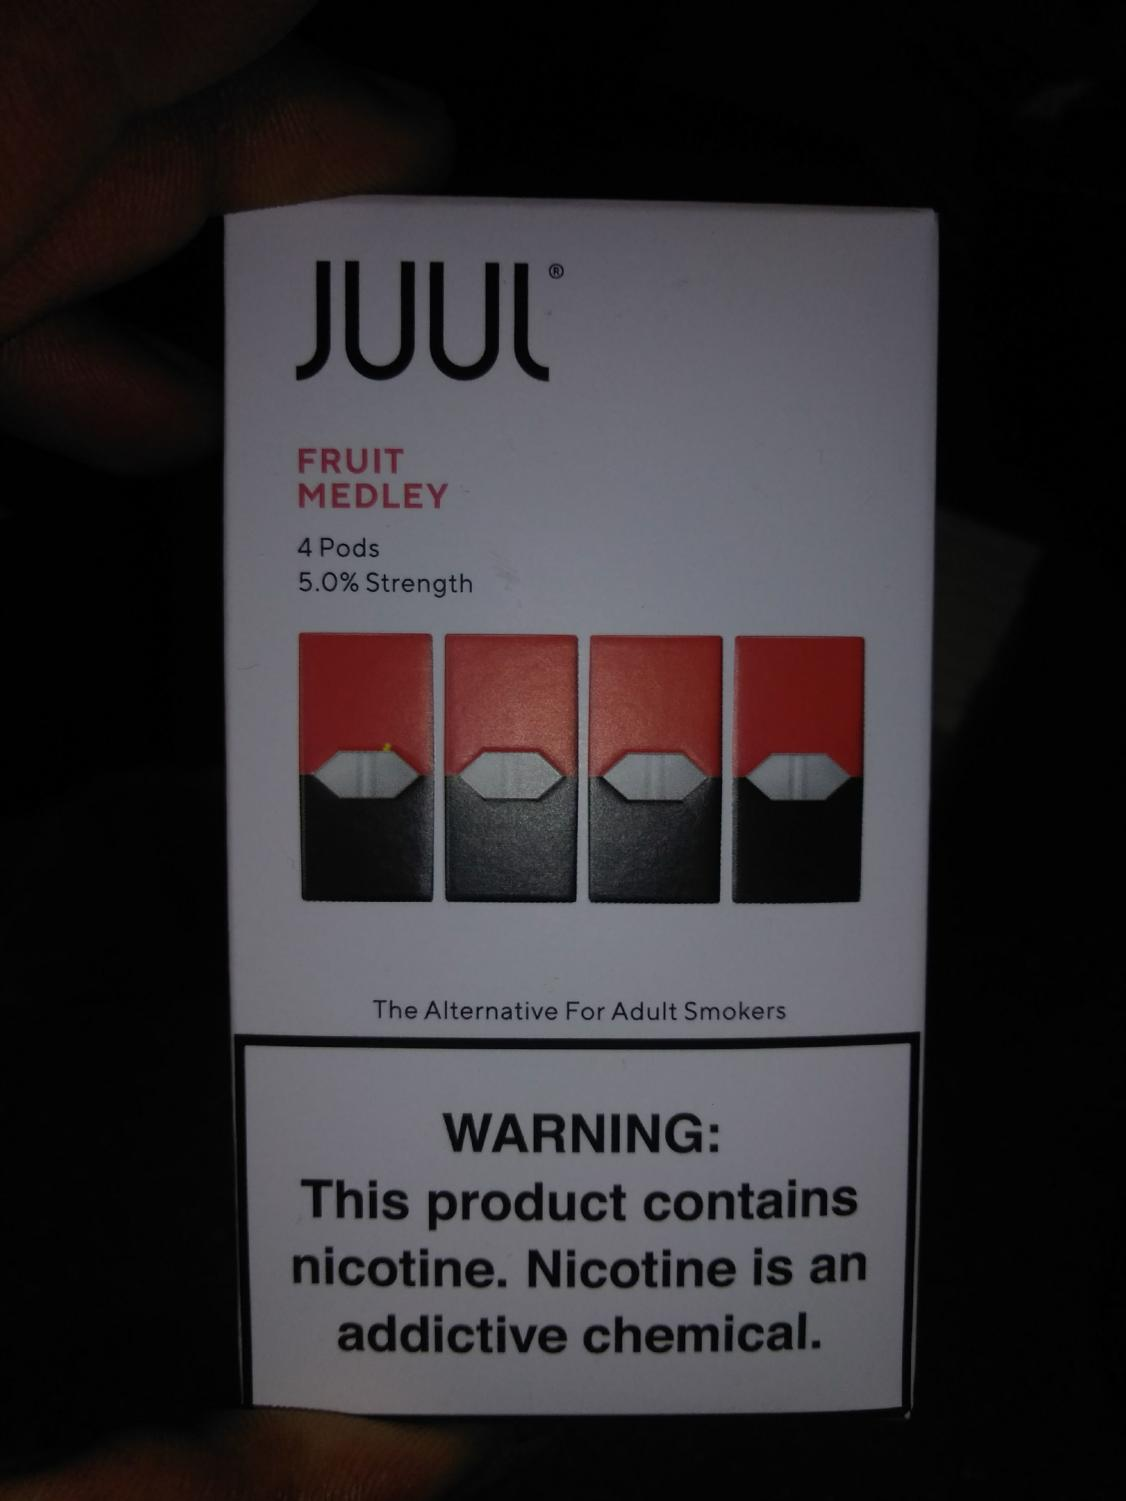 JUUL is among the most popular e-cigarette companies